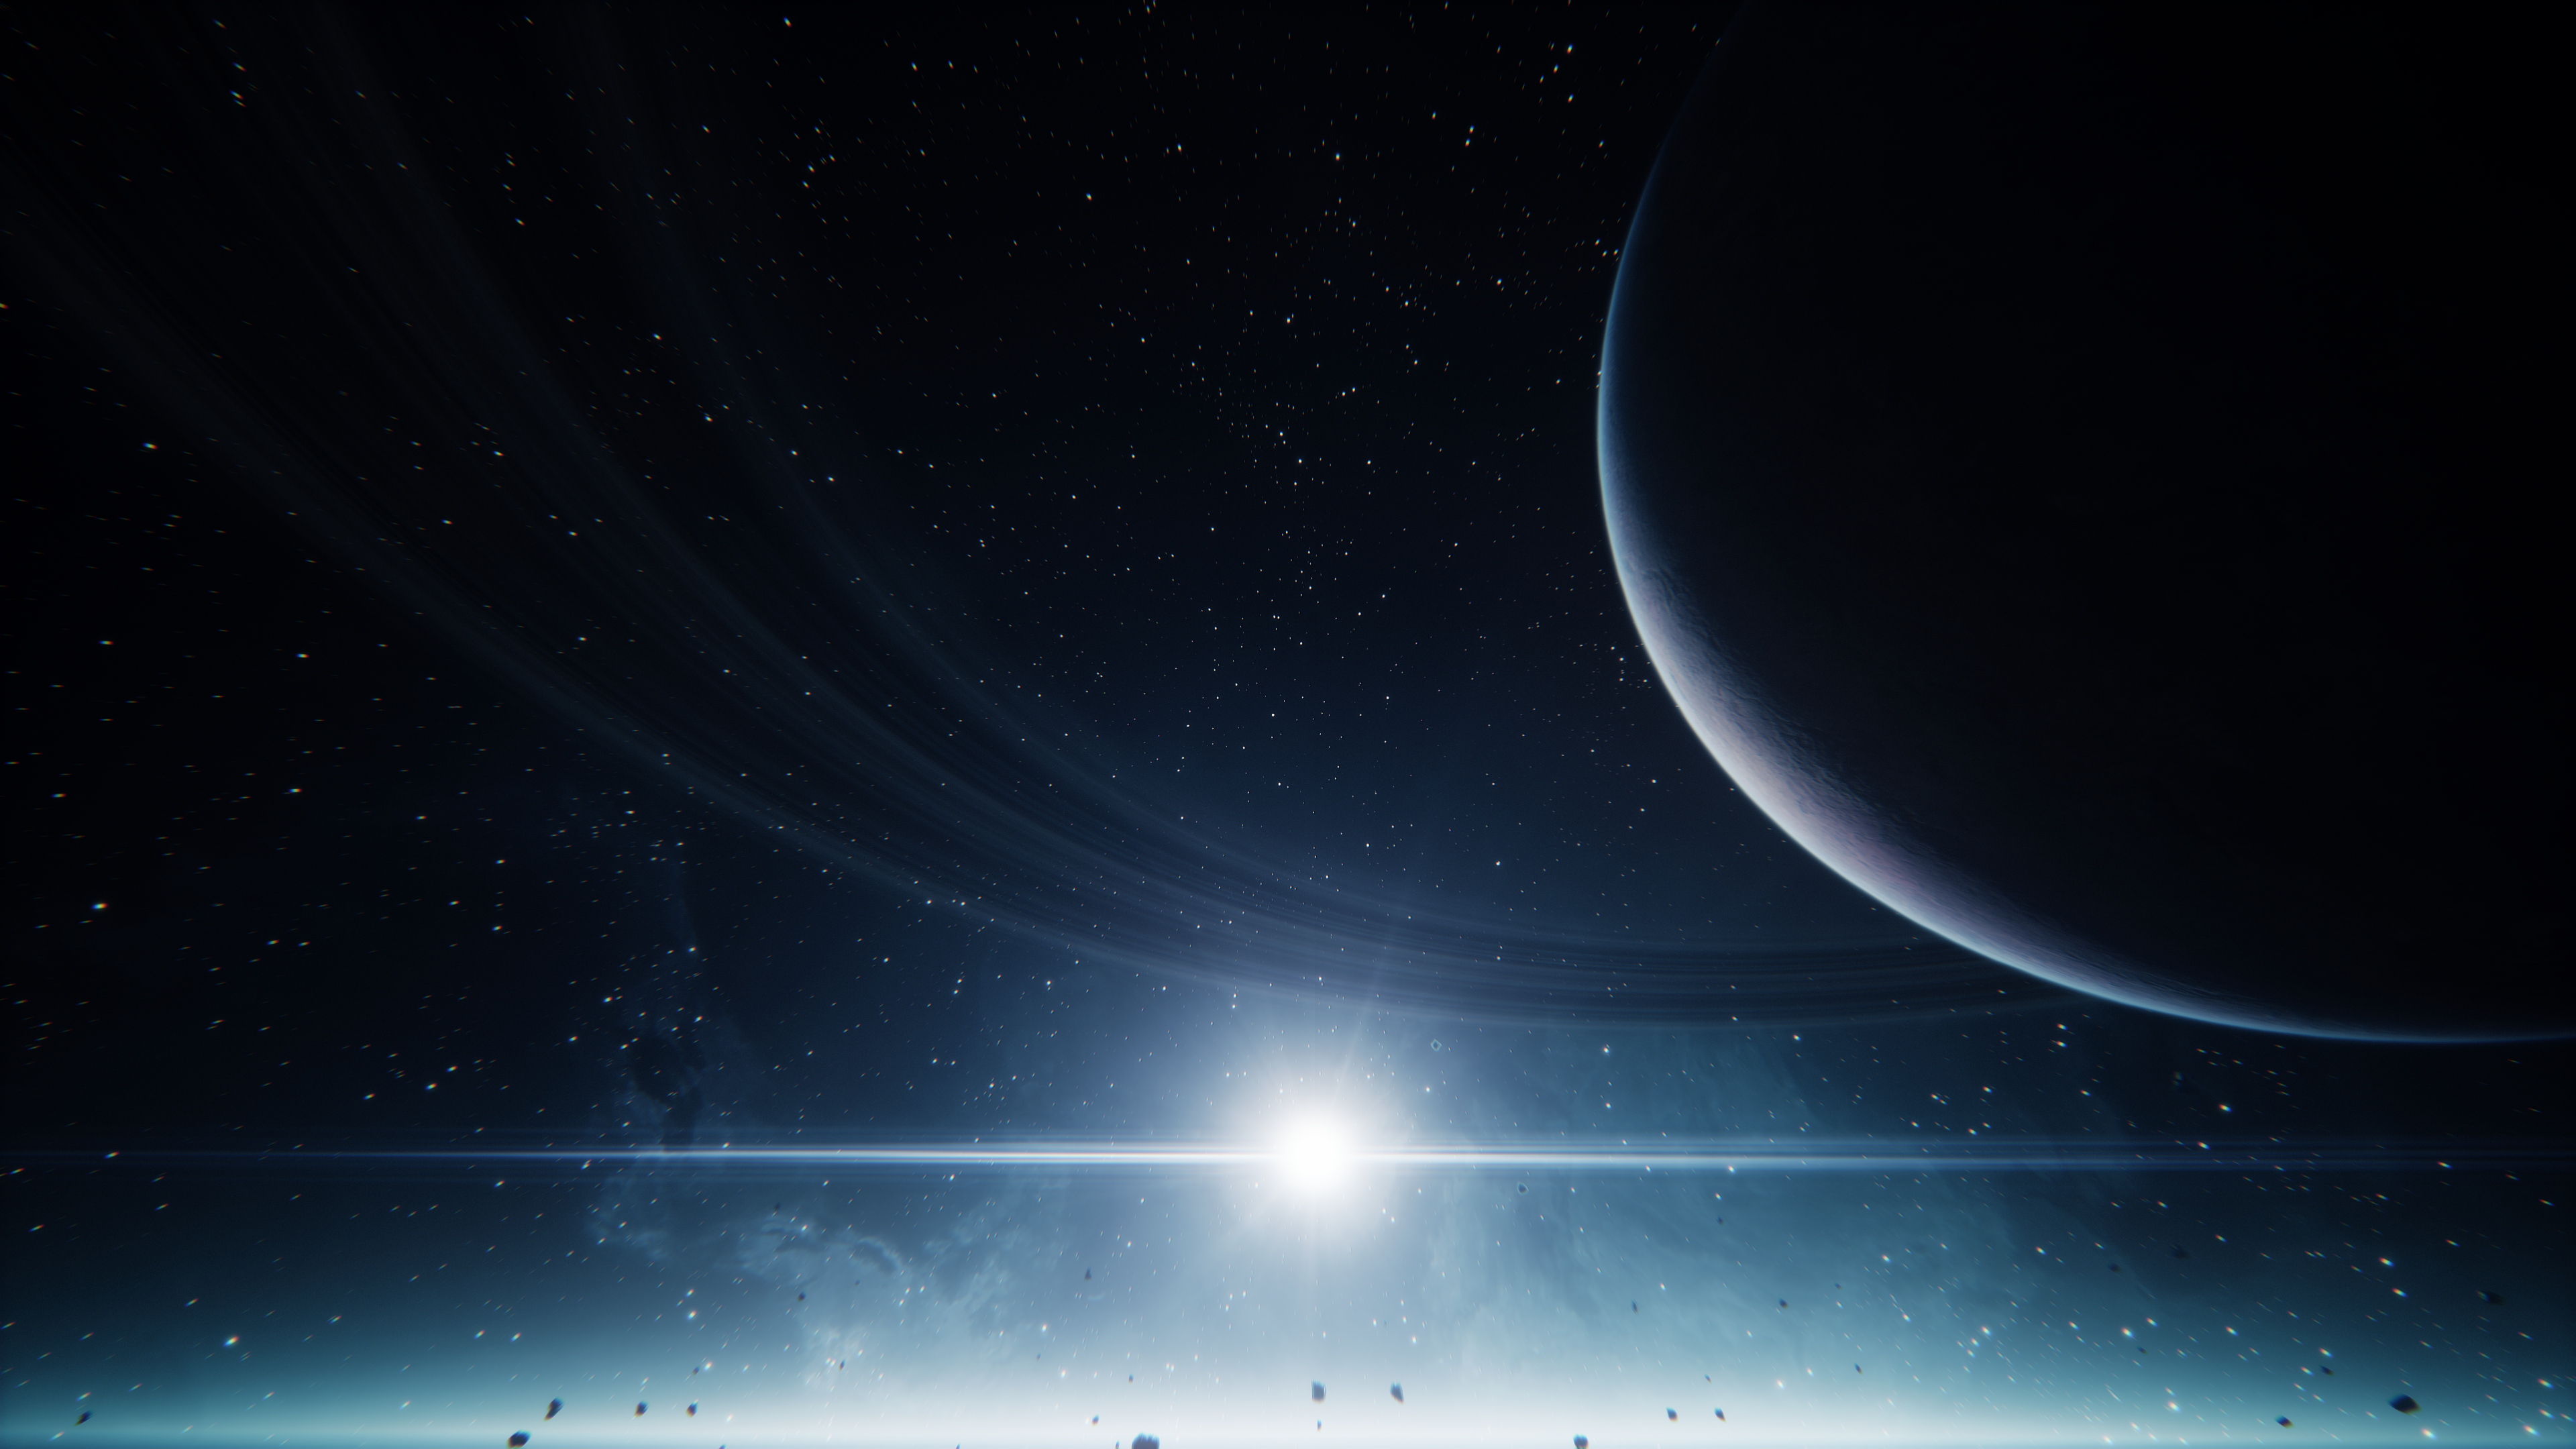 General 3840x2160 everspace space stars planetary rings